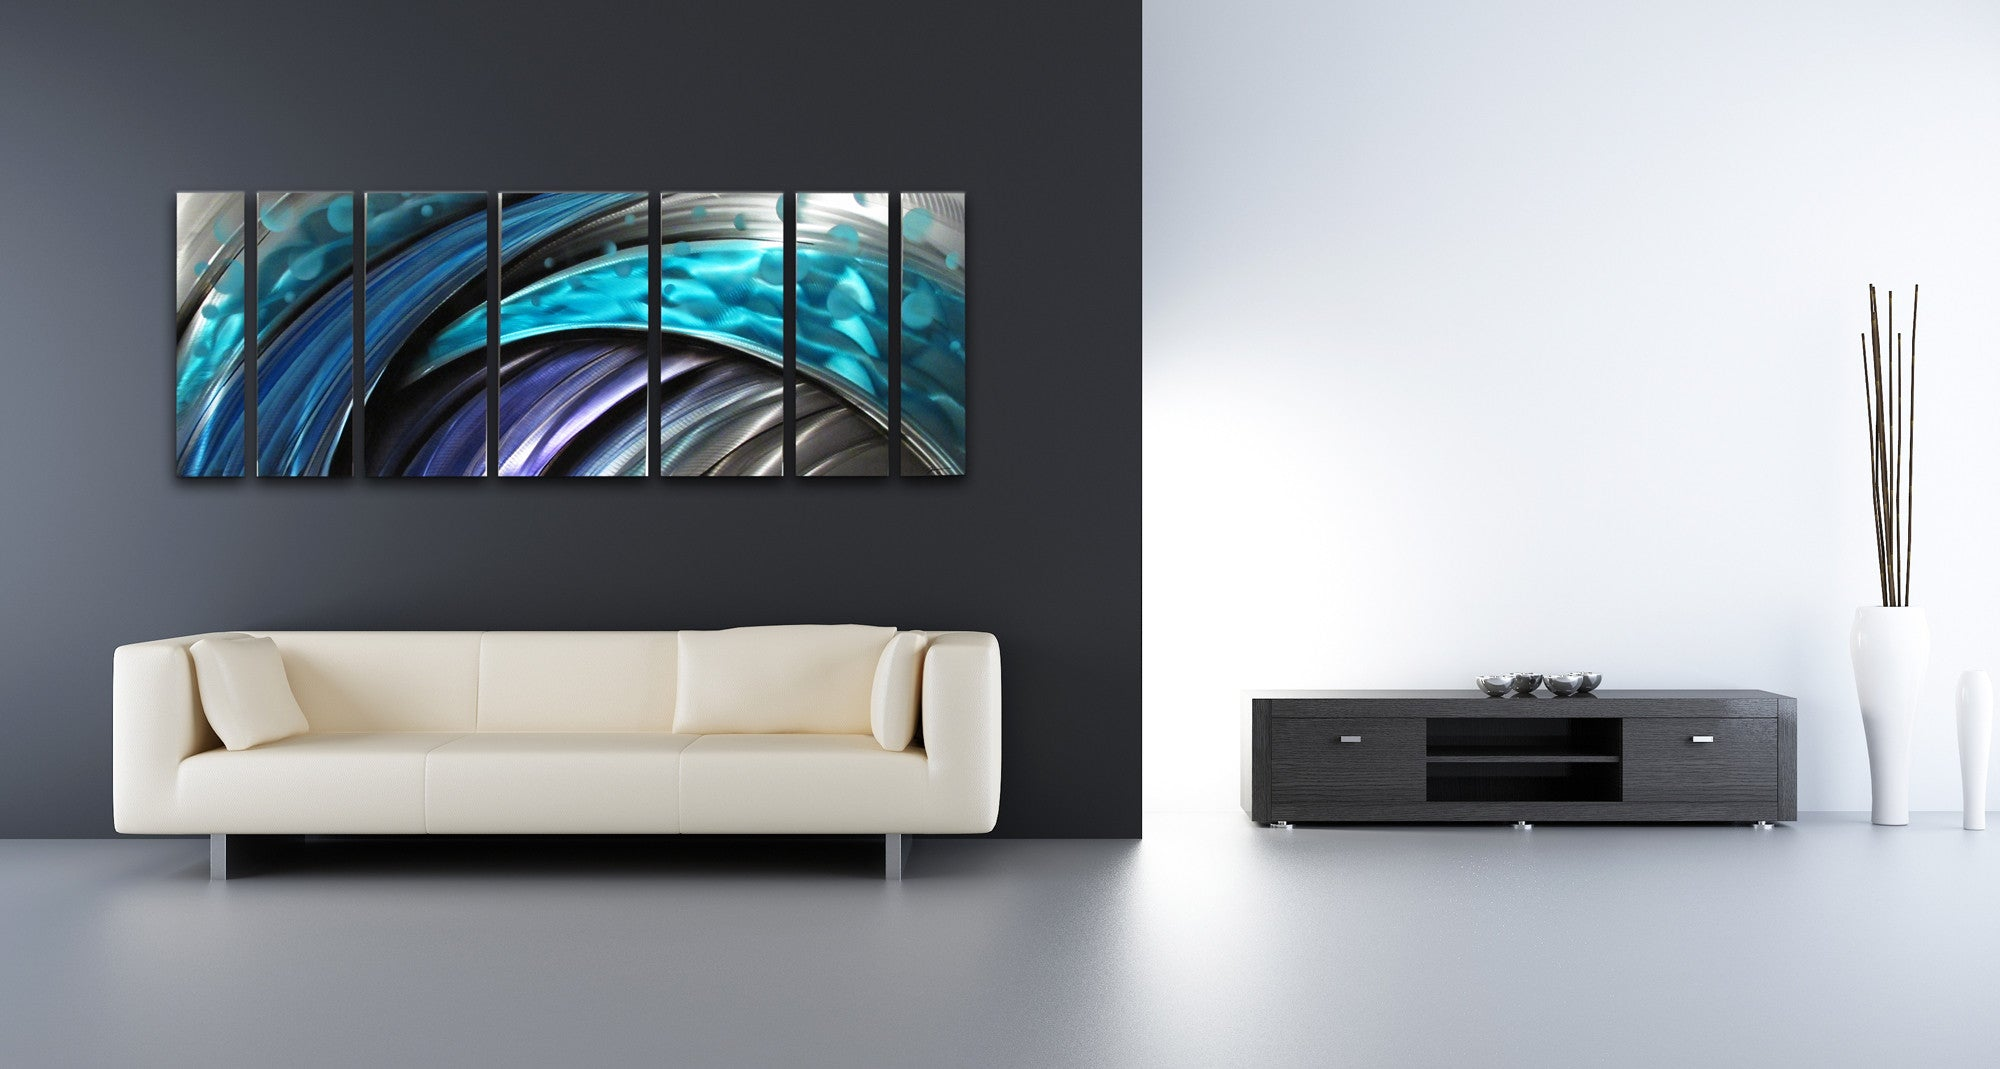 Contemporary Metal Wall Art Large Metal Wall Art Panels  Contemporary Abstract Artdv8 Studio